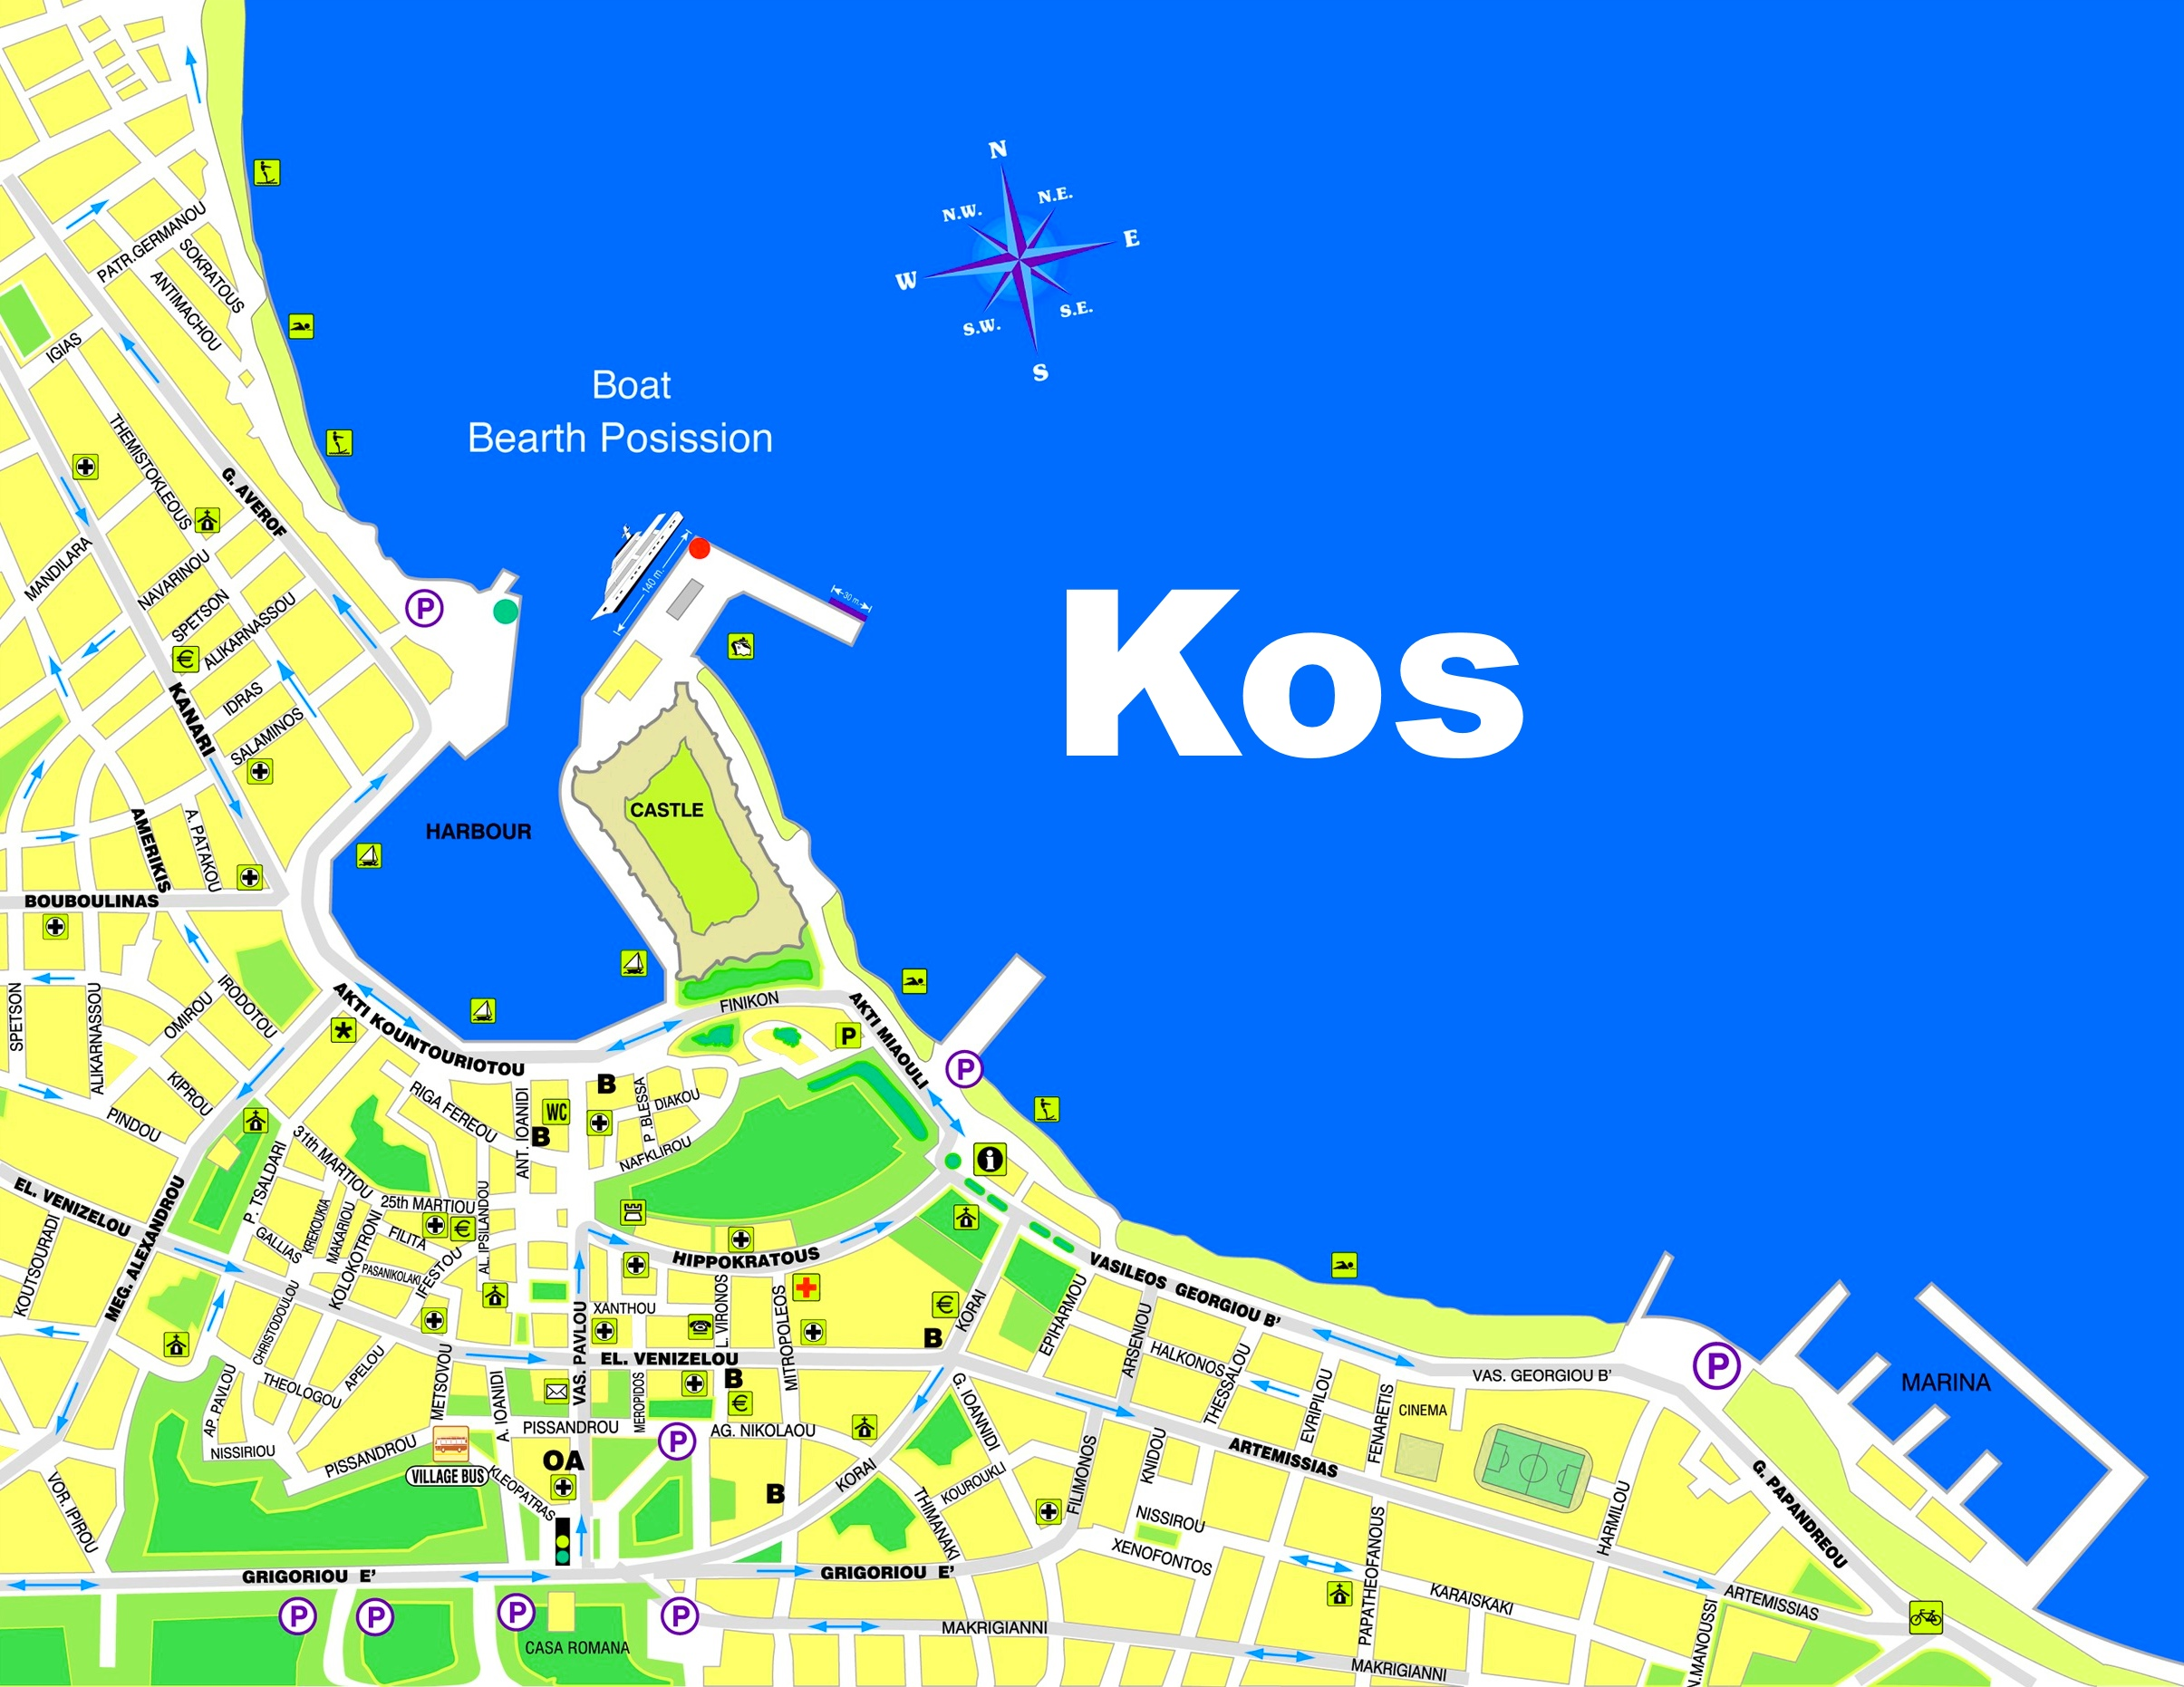 Kos old town map kos old town map gumiabroncs Choice Image